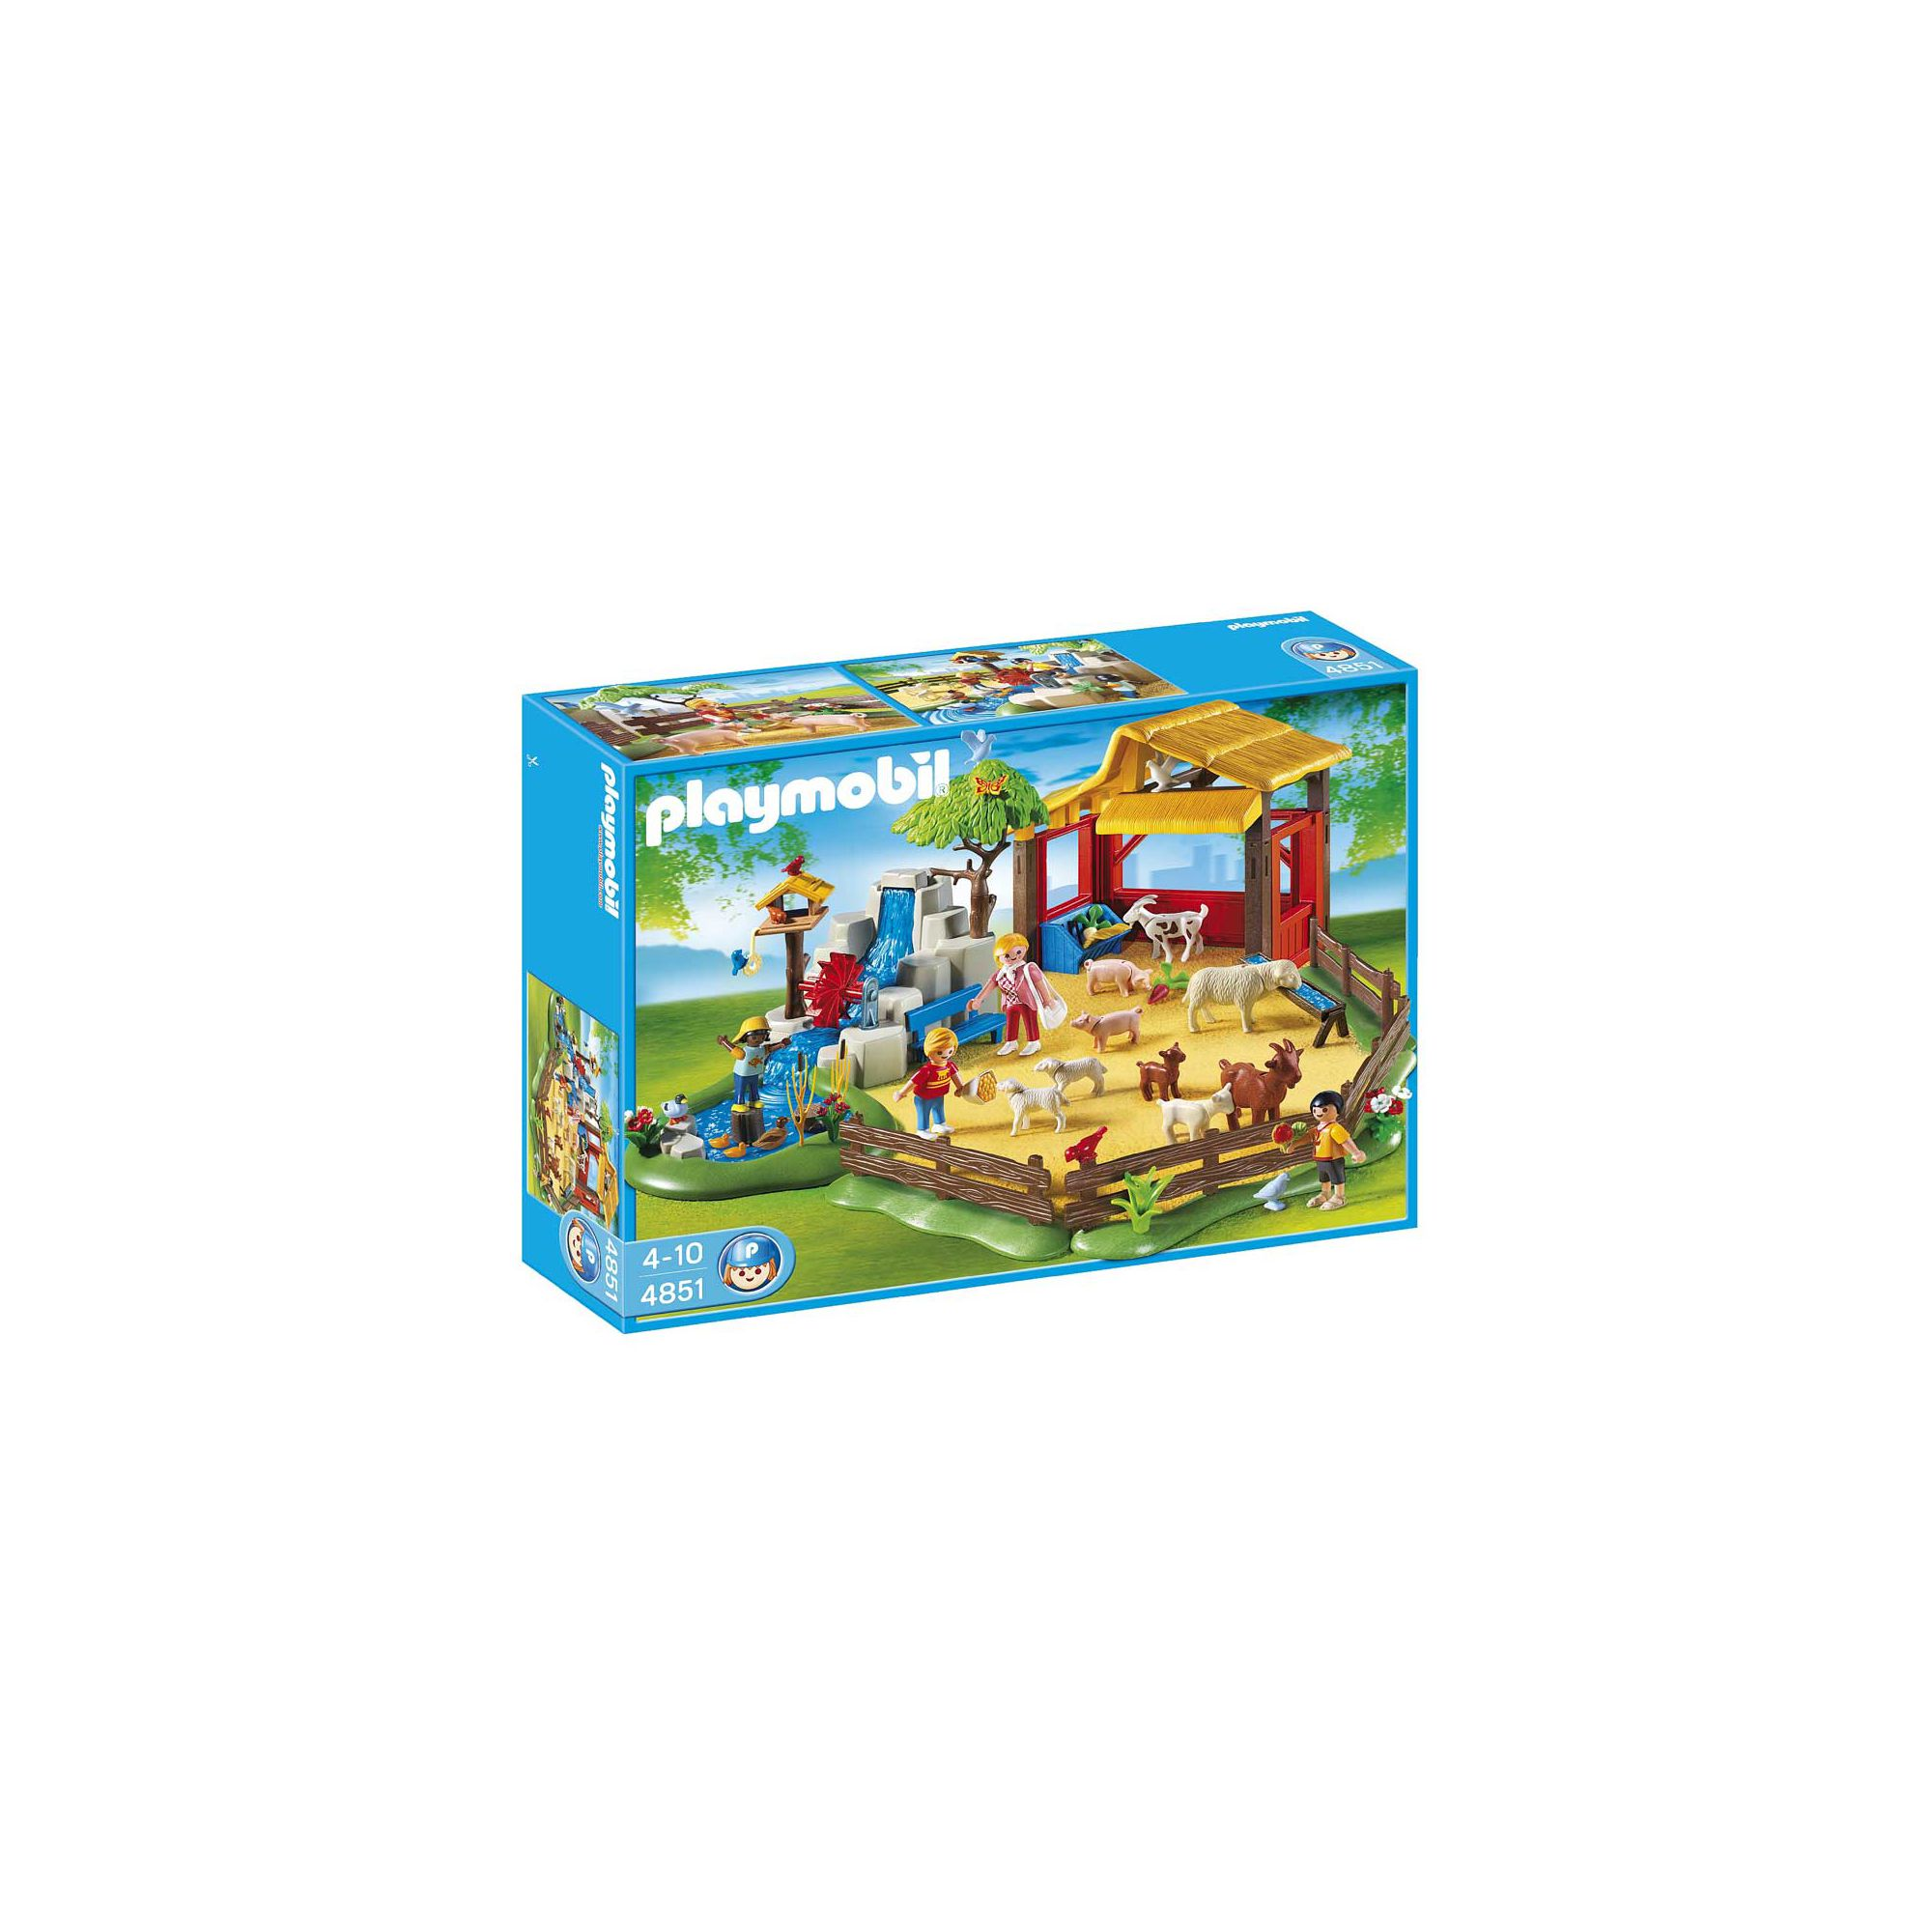 Games consoles and toys kurio 10 39 39 tablet special offers for Playmobil kinderzimmer 4287